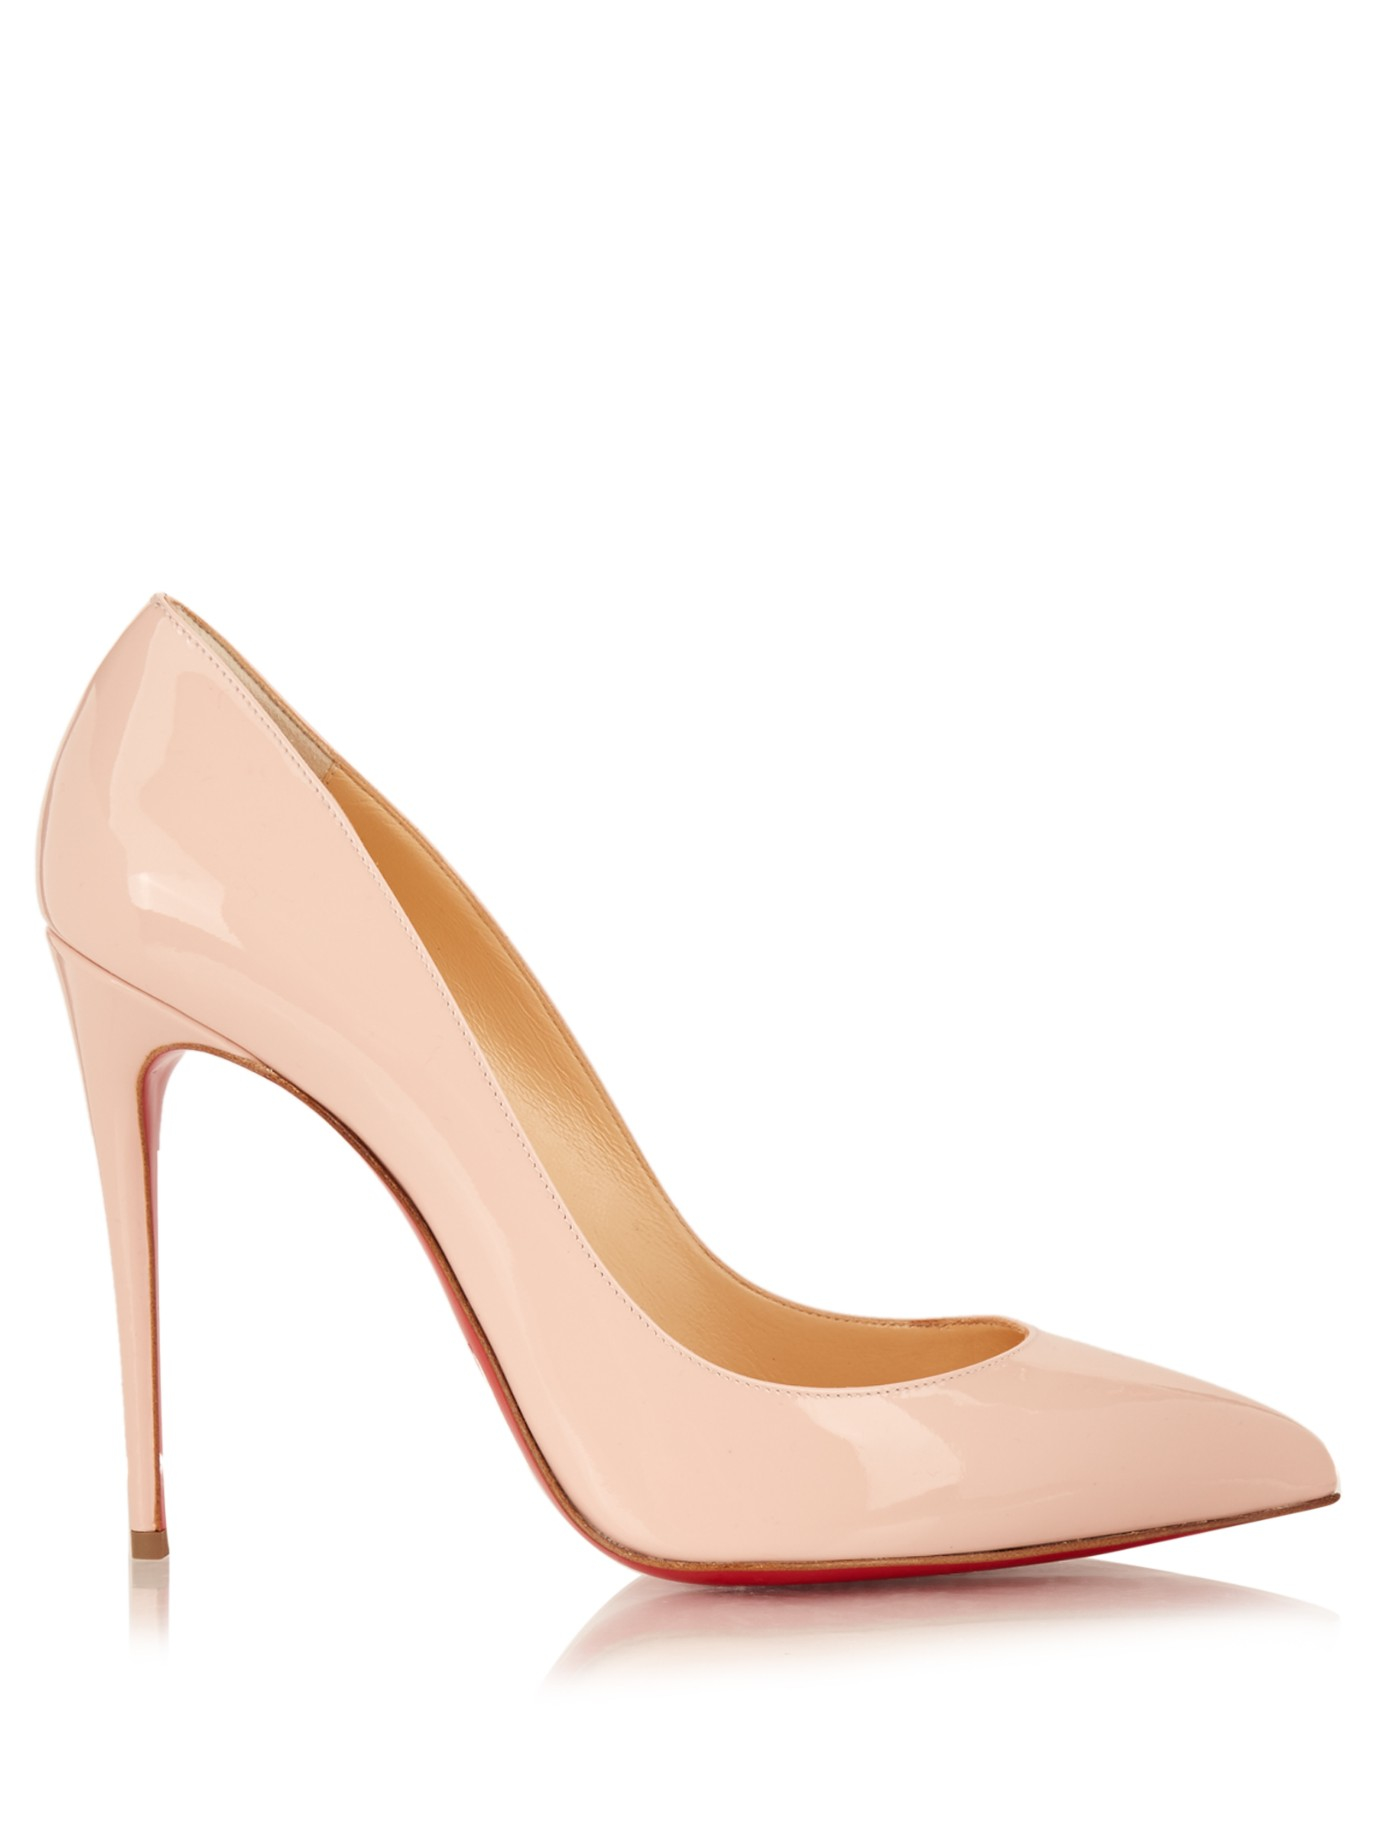 46c1532105f Lyst - Christian Louboutin Pigalle Follies Patent-Leather Pumps in Pink